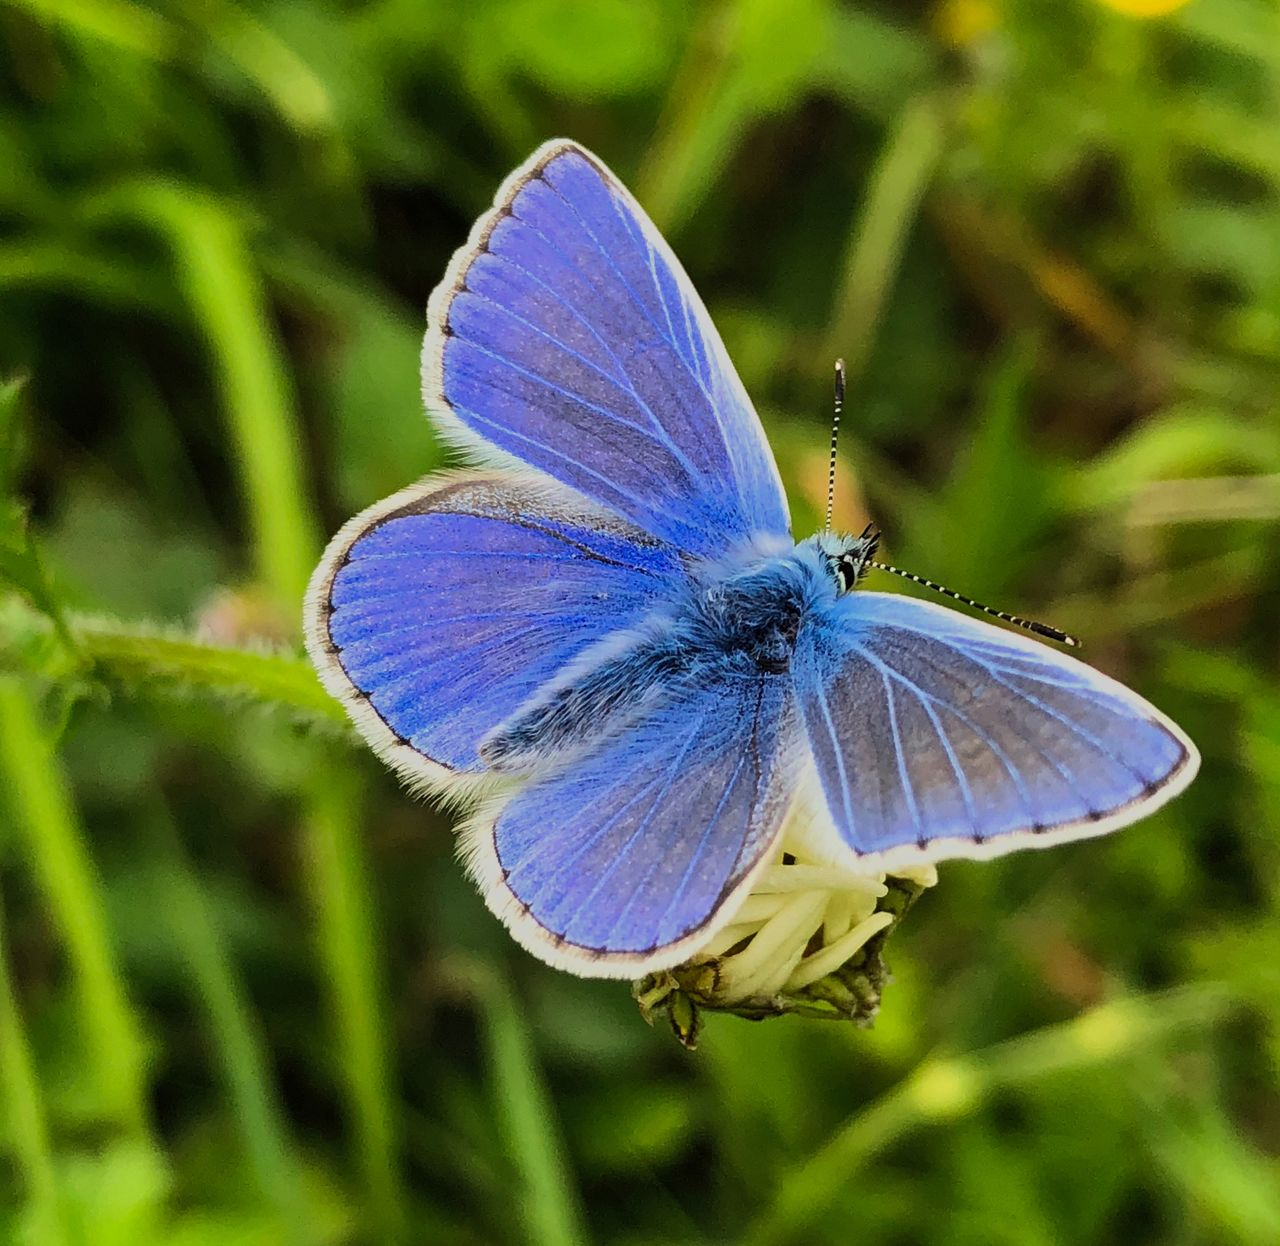 invertebrate, insect, one animal, animal wildlife, animals in the wild, animal themes, close-up, animal, animal wing, plant, beauty in nature, focus on foreground, blue, butterfly - insect, flower, no people, day, nature, growth, purple, butterfly